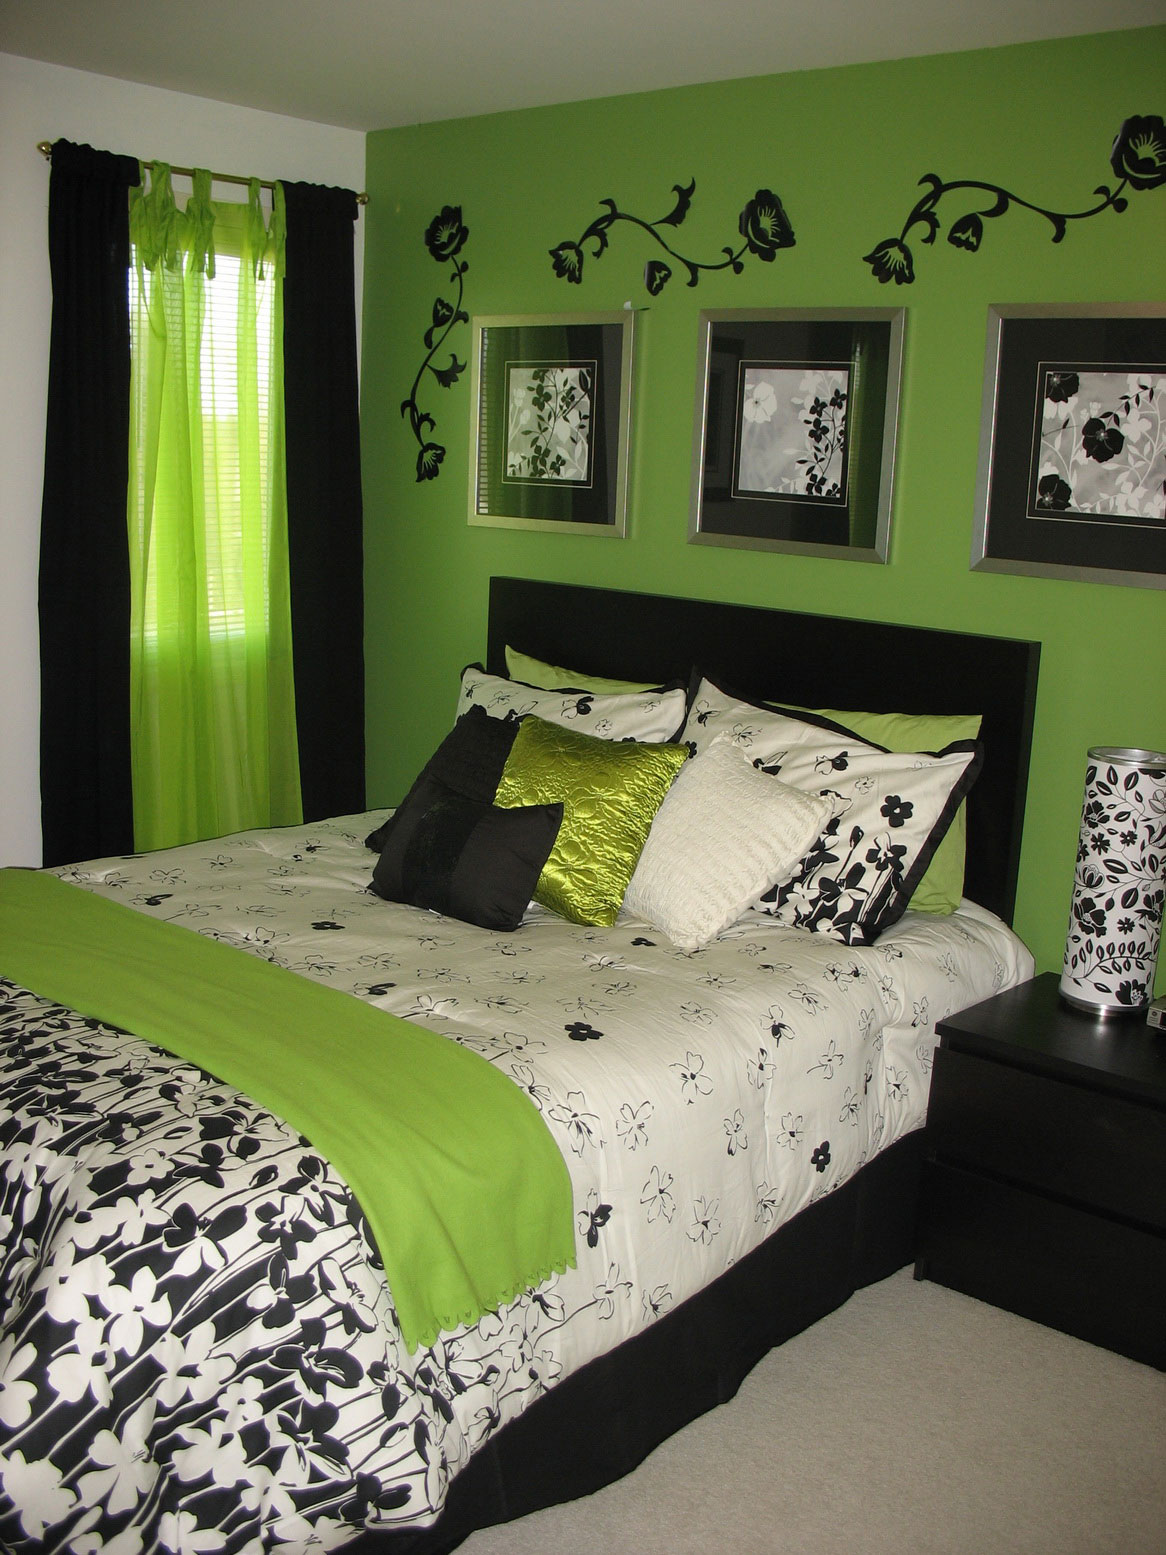 60 Classy And Marvelous Bedroom Wall Design Ideas - The ... on Room Decor Pictures  id=86818